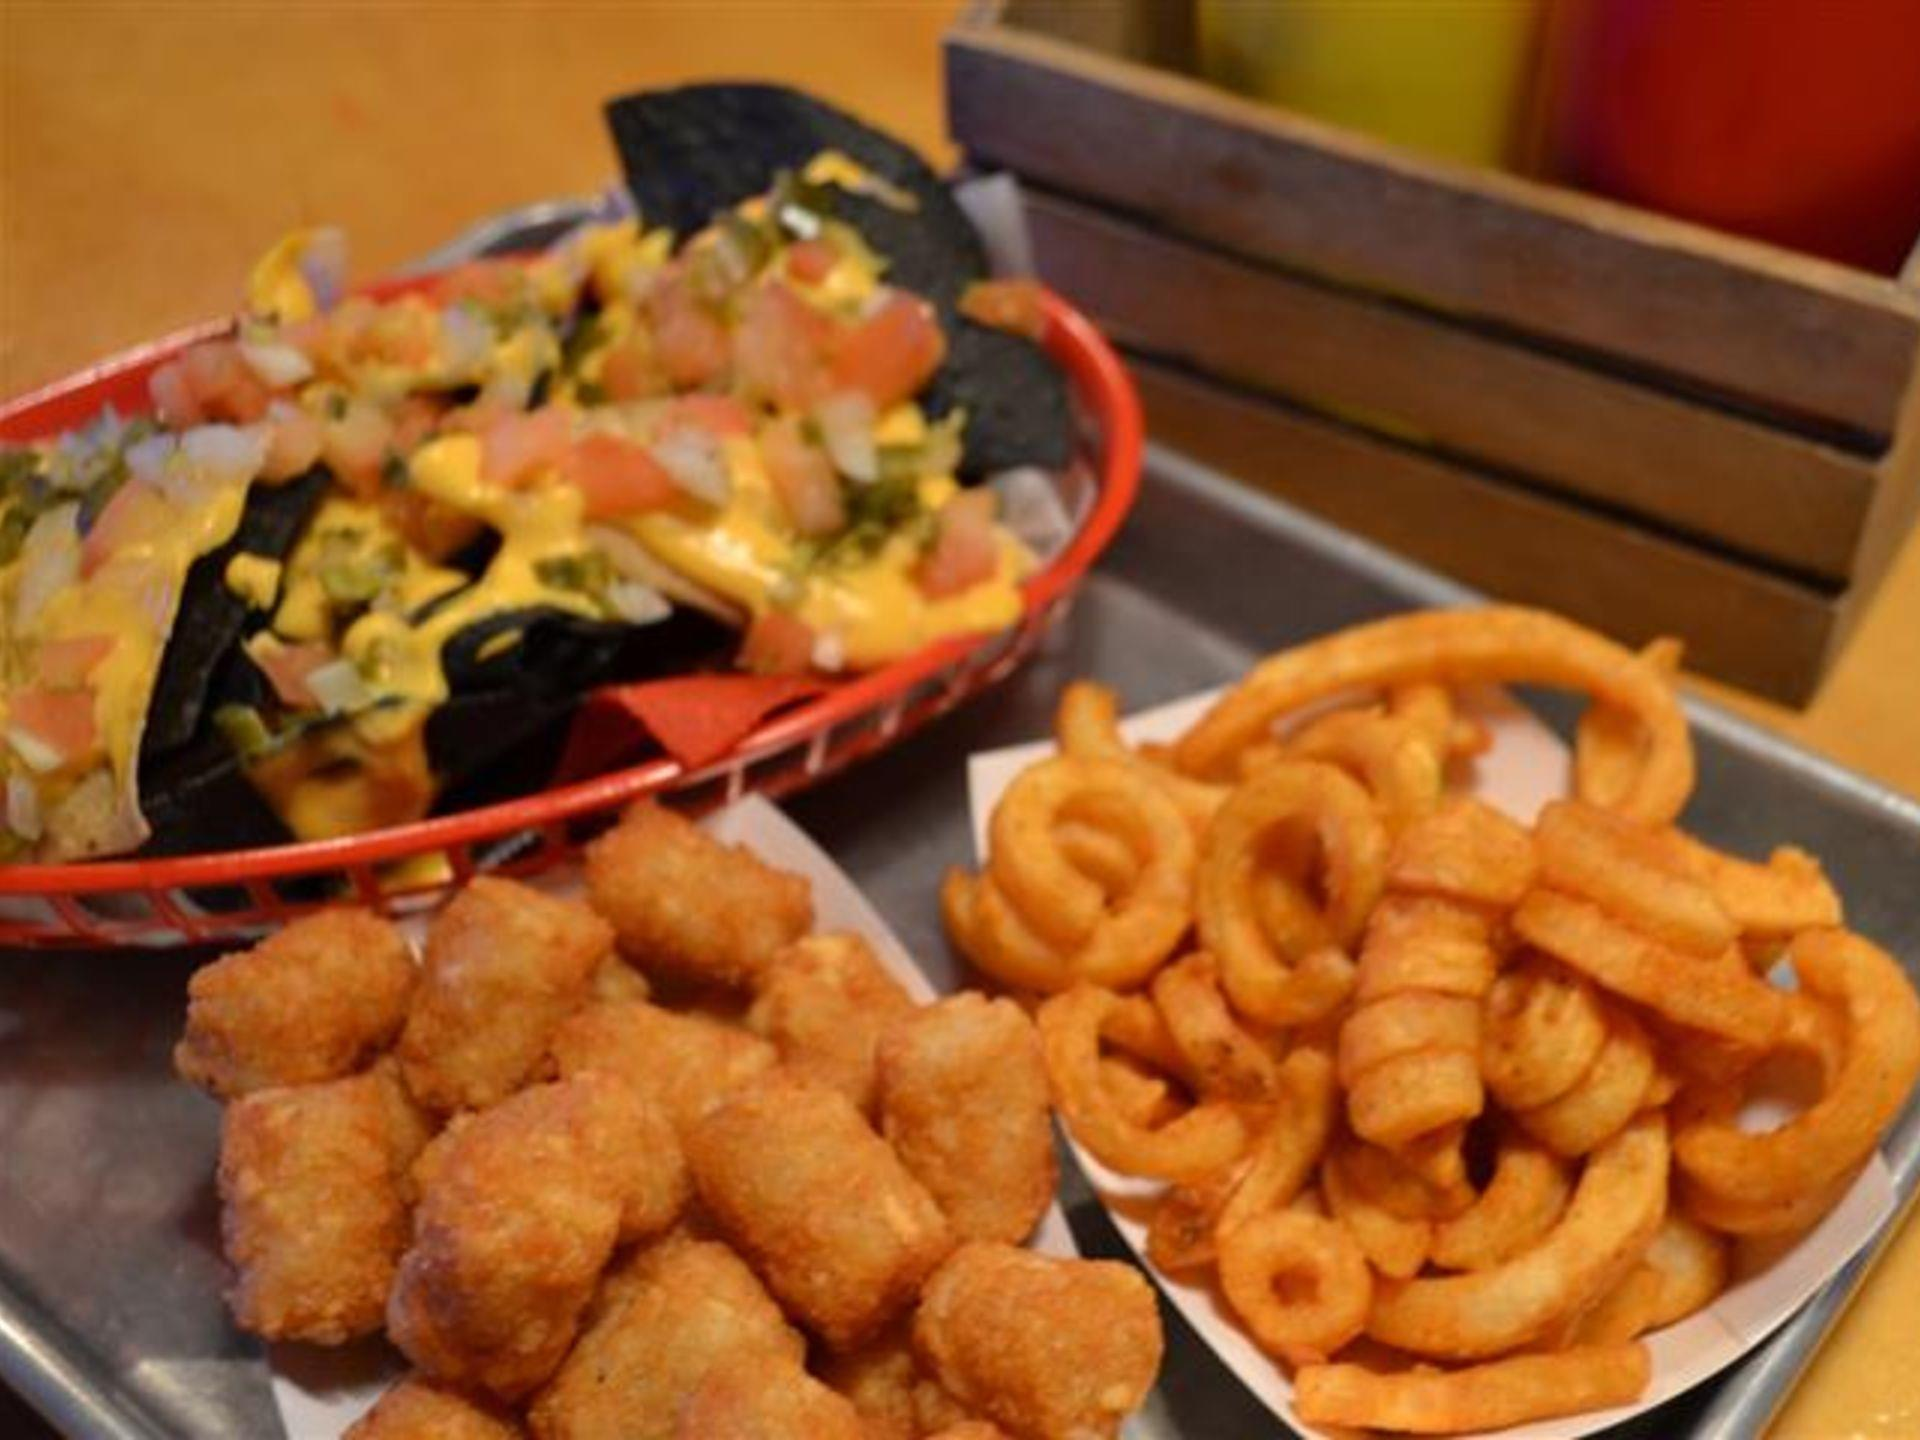 Basket of nachos, tater tots and curly fries